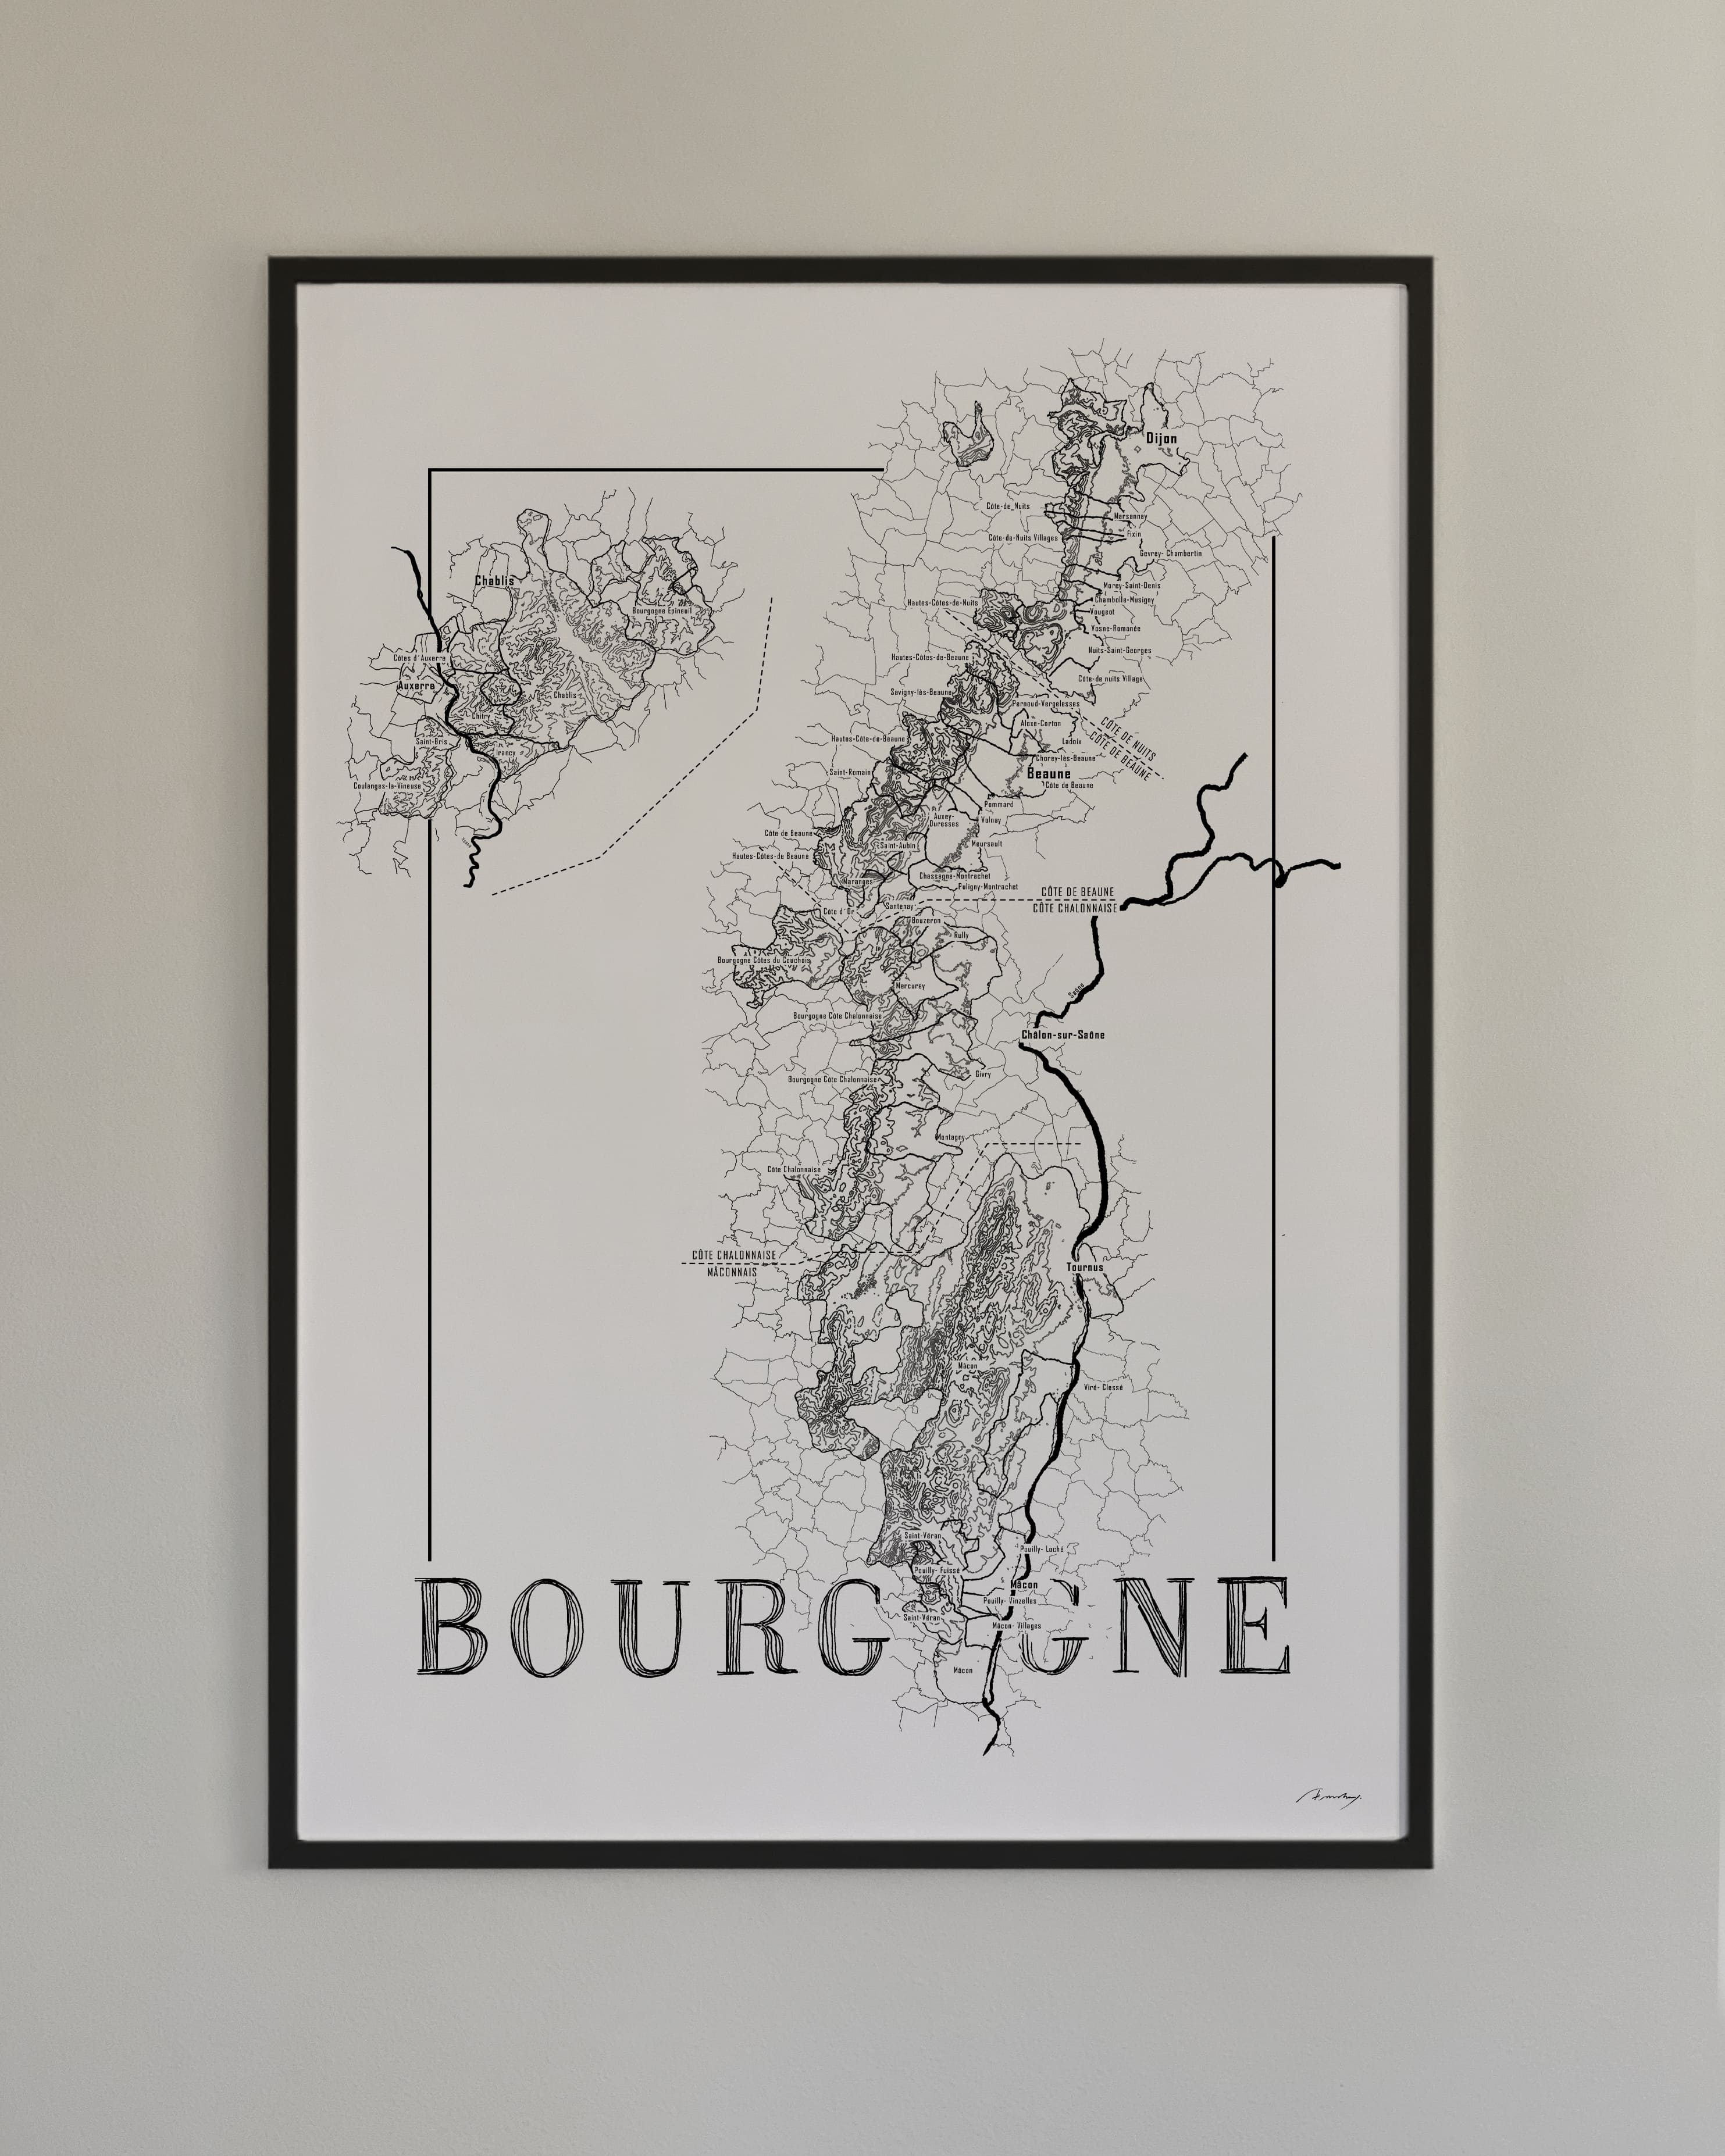 burgundy bourgogne wine map vinkarta